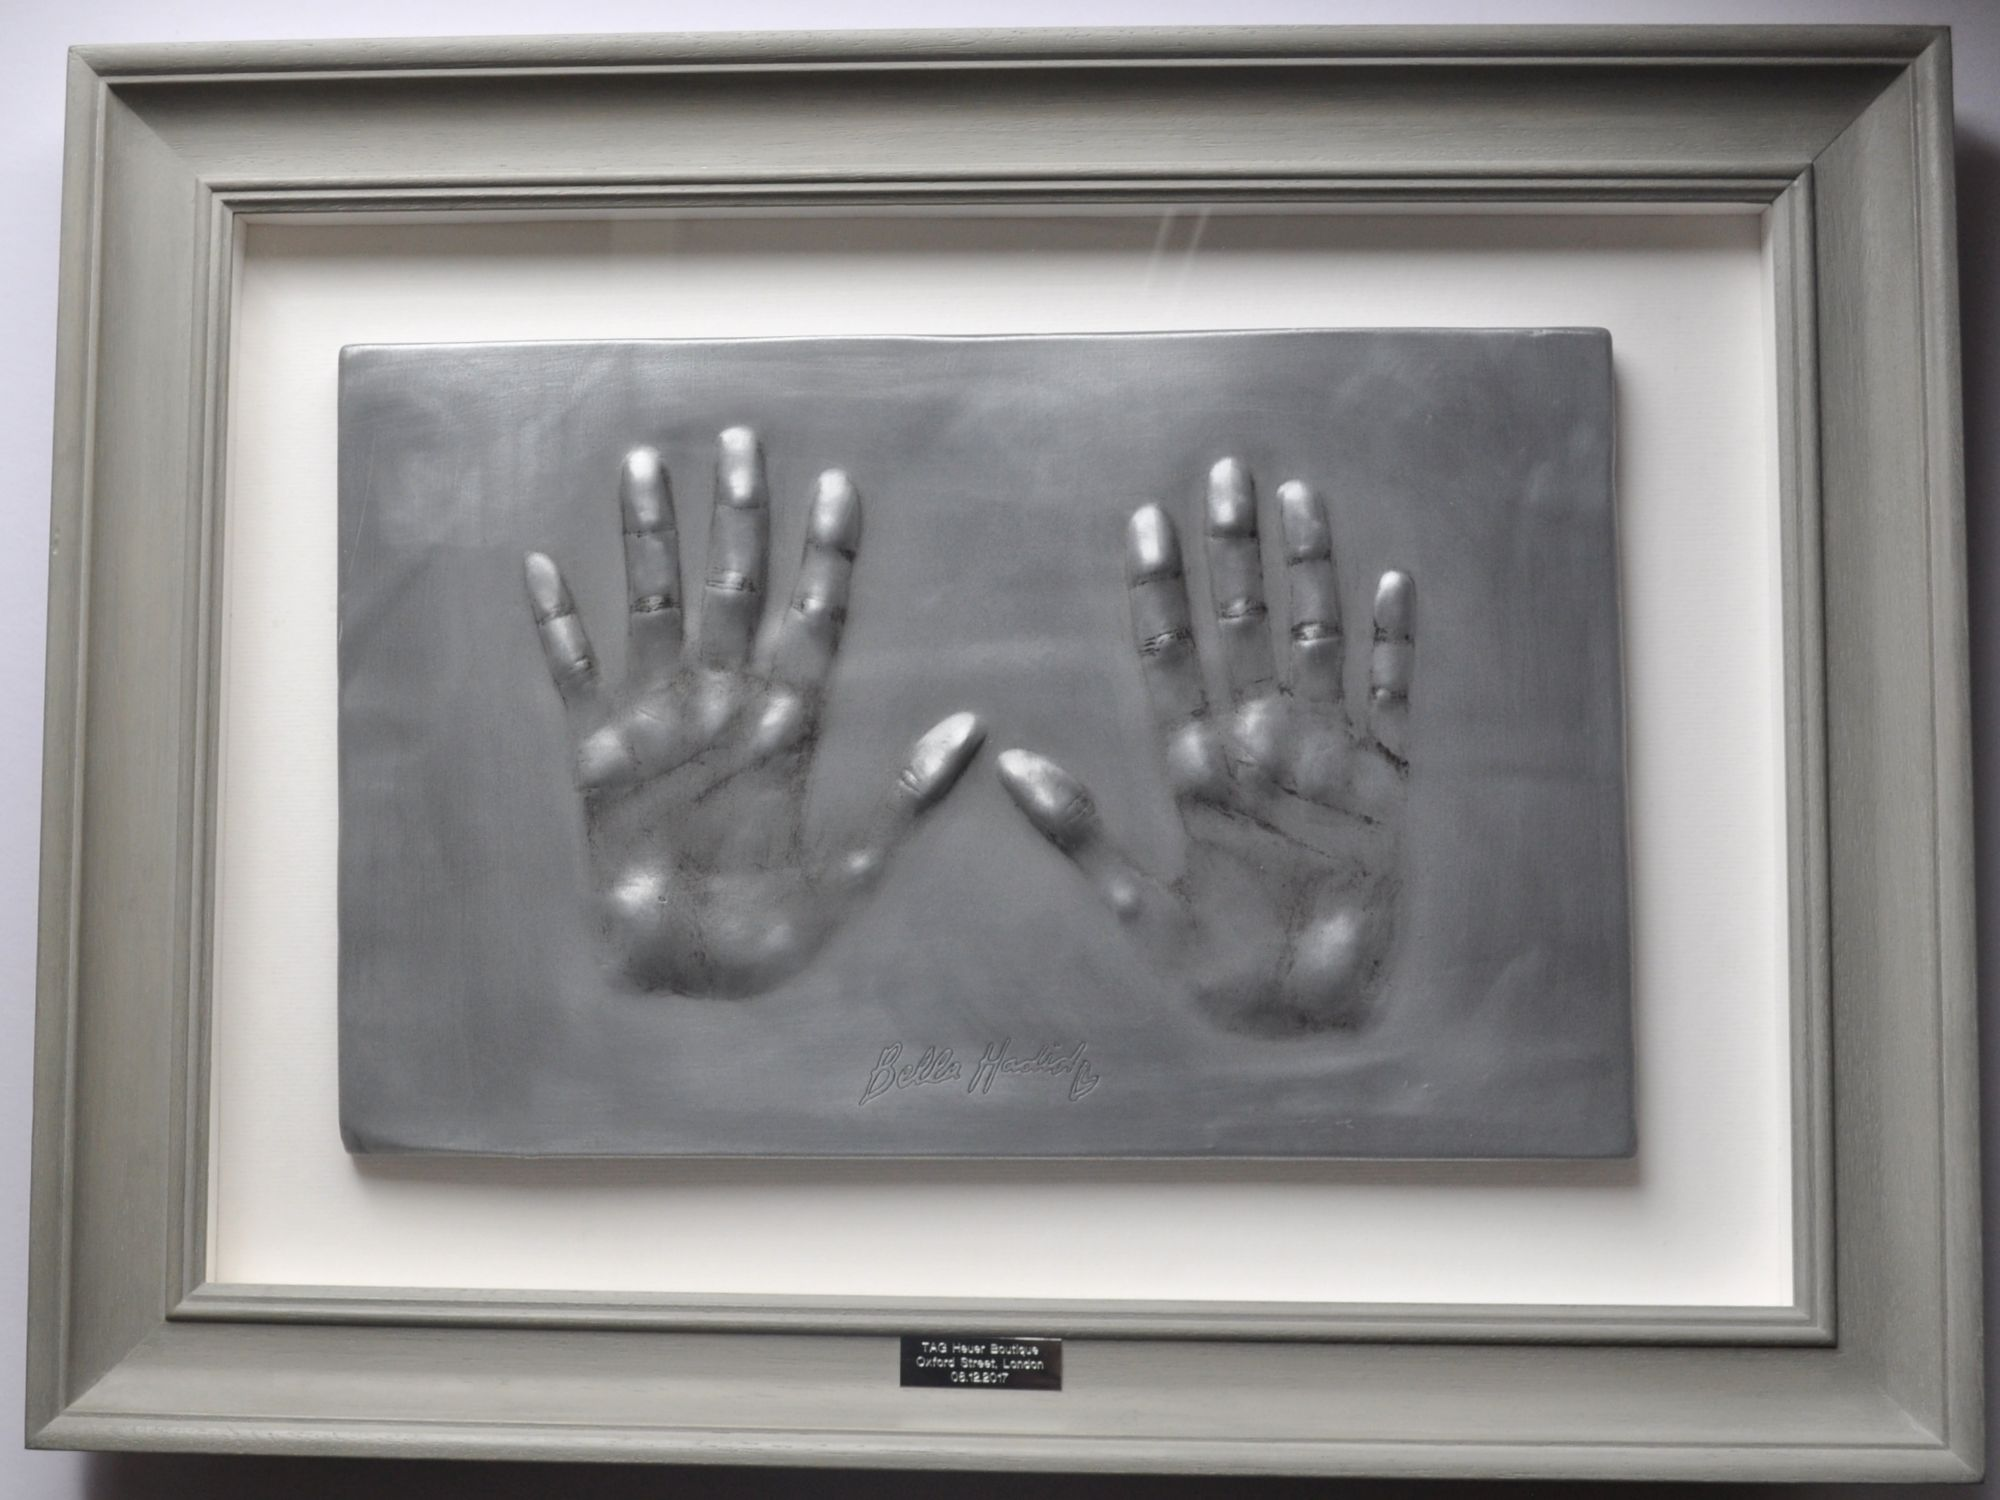 The finished hands were cast in Aluminium for display in the TAG Heuer Boutique